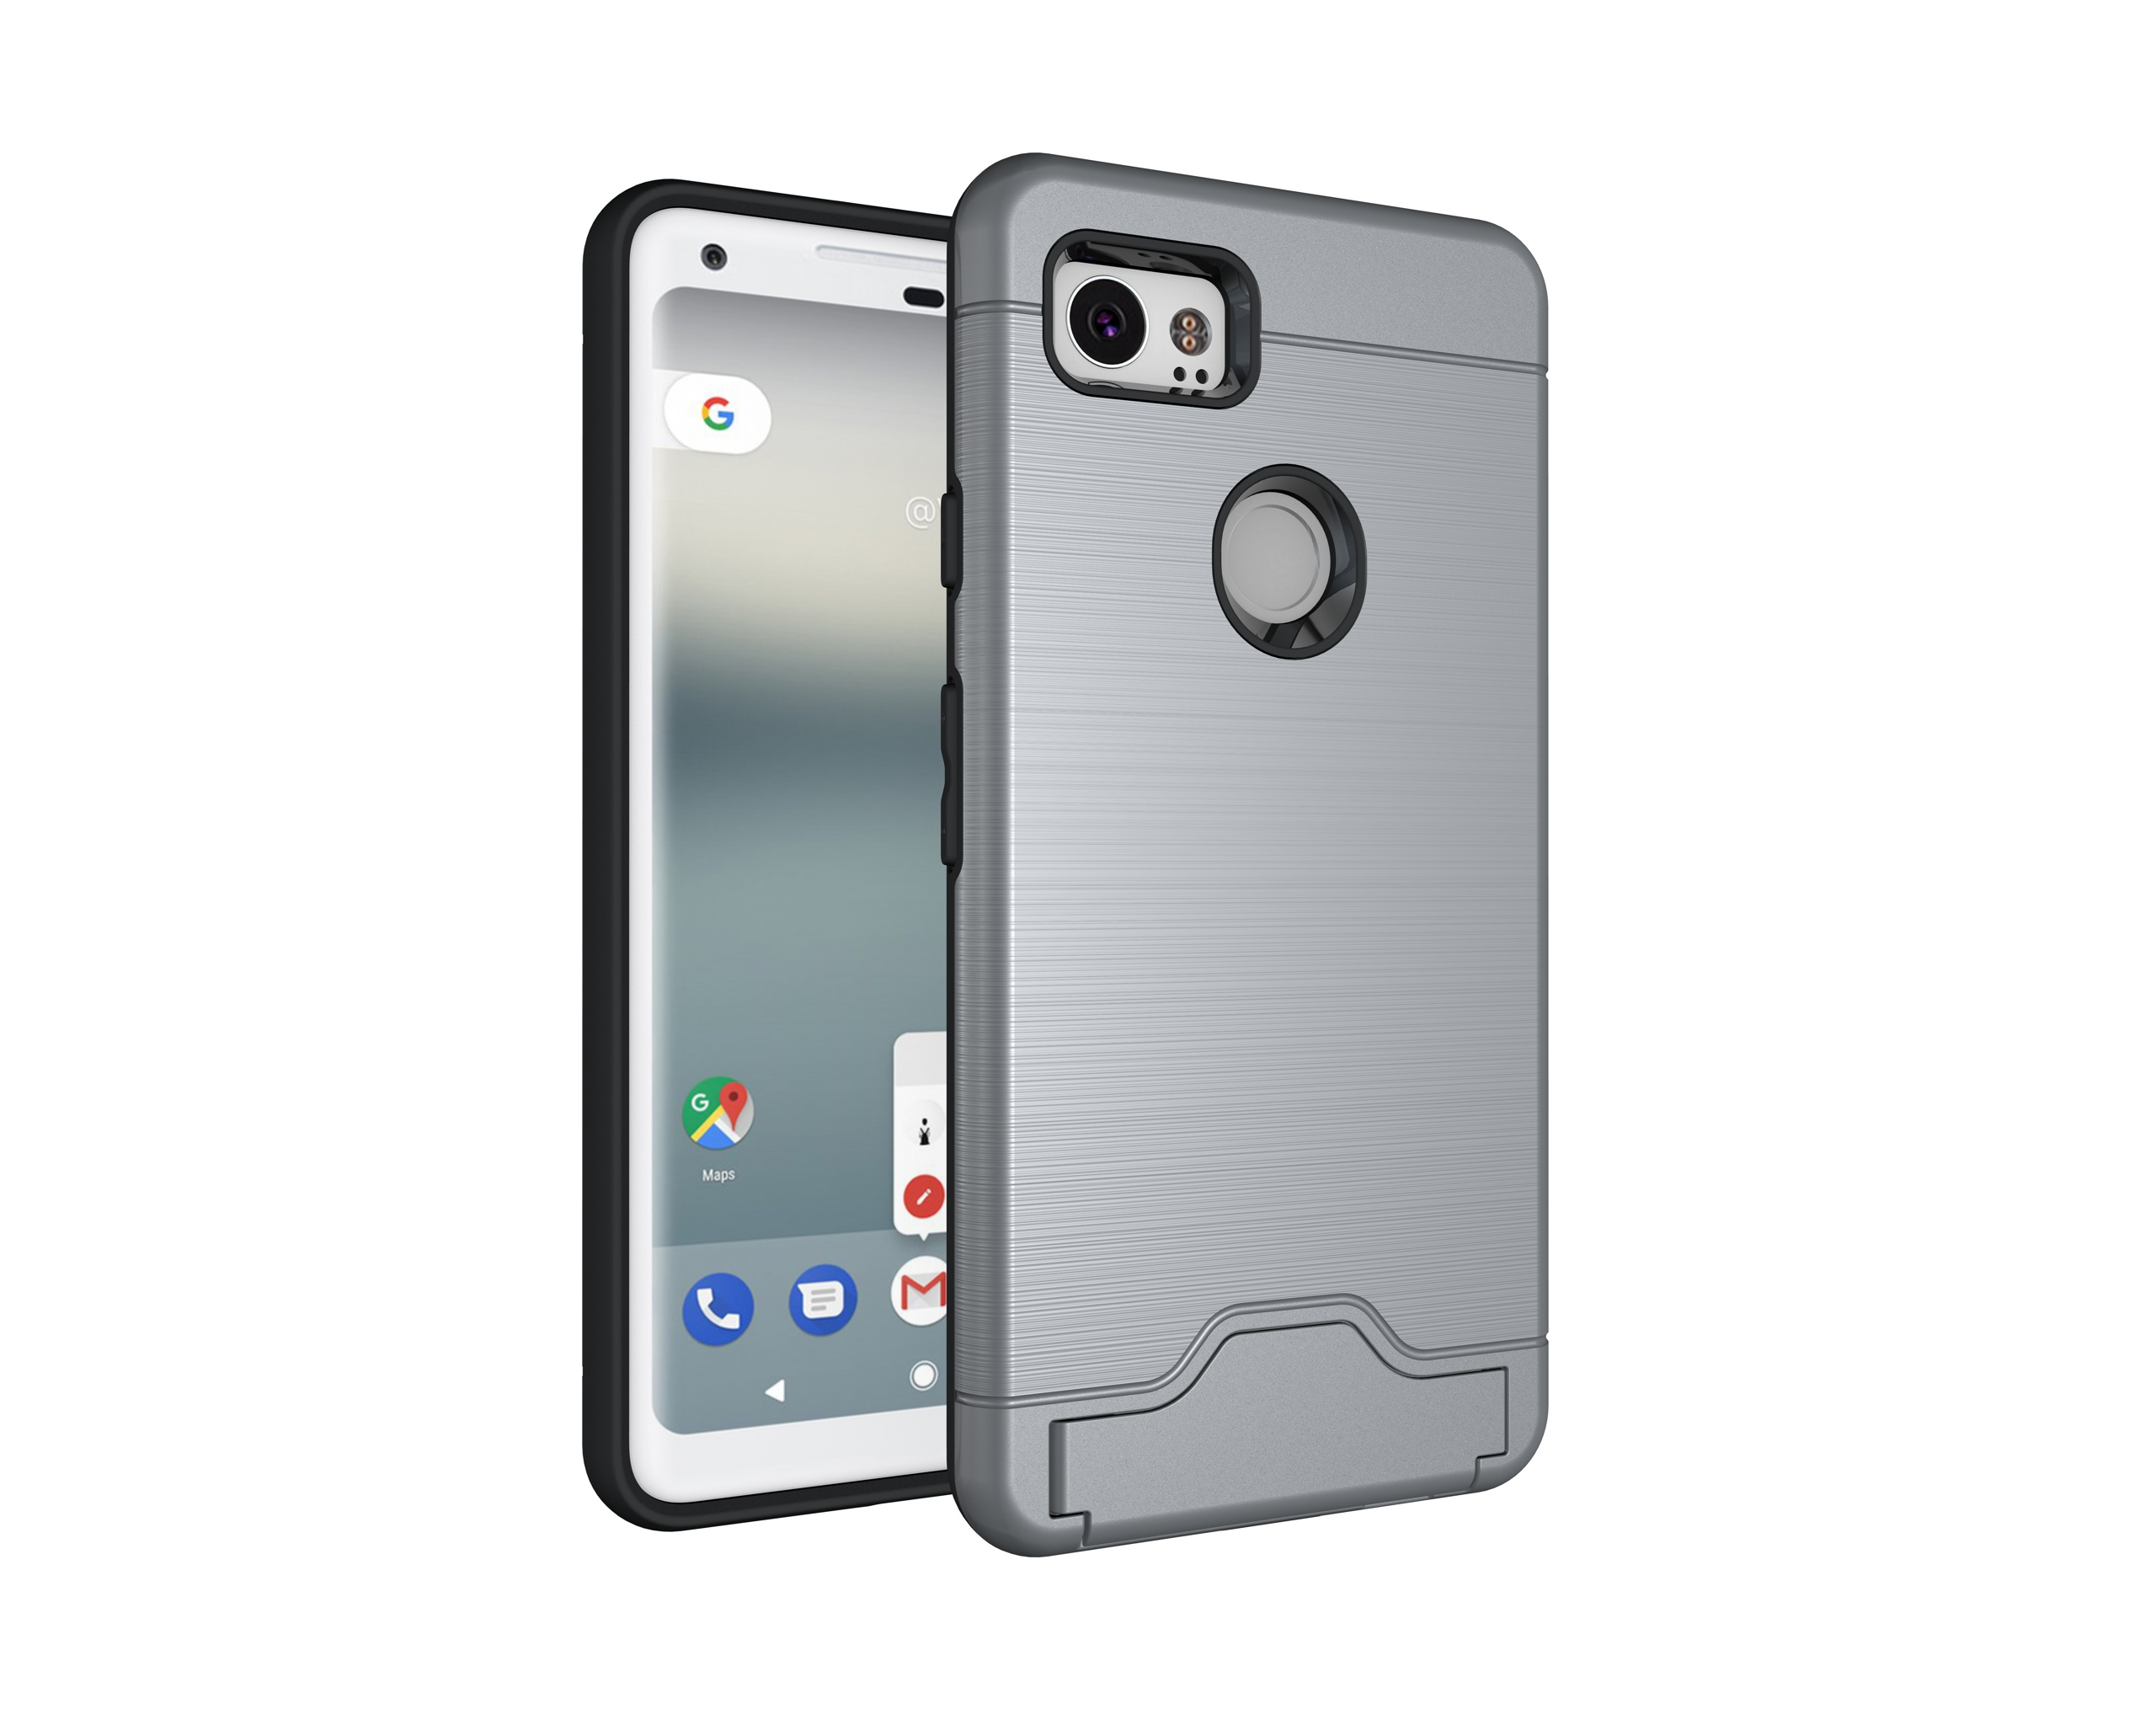 Armor Bumper Case For Google Pixel 2 XL Hybrid Stand Cover For Google Pixel 2 XL Military Grade Shockproof Case With Card Holder